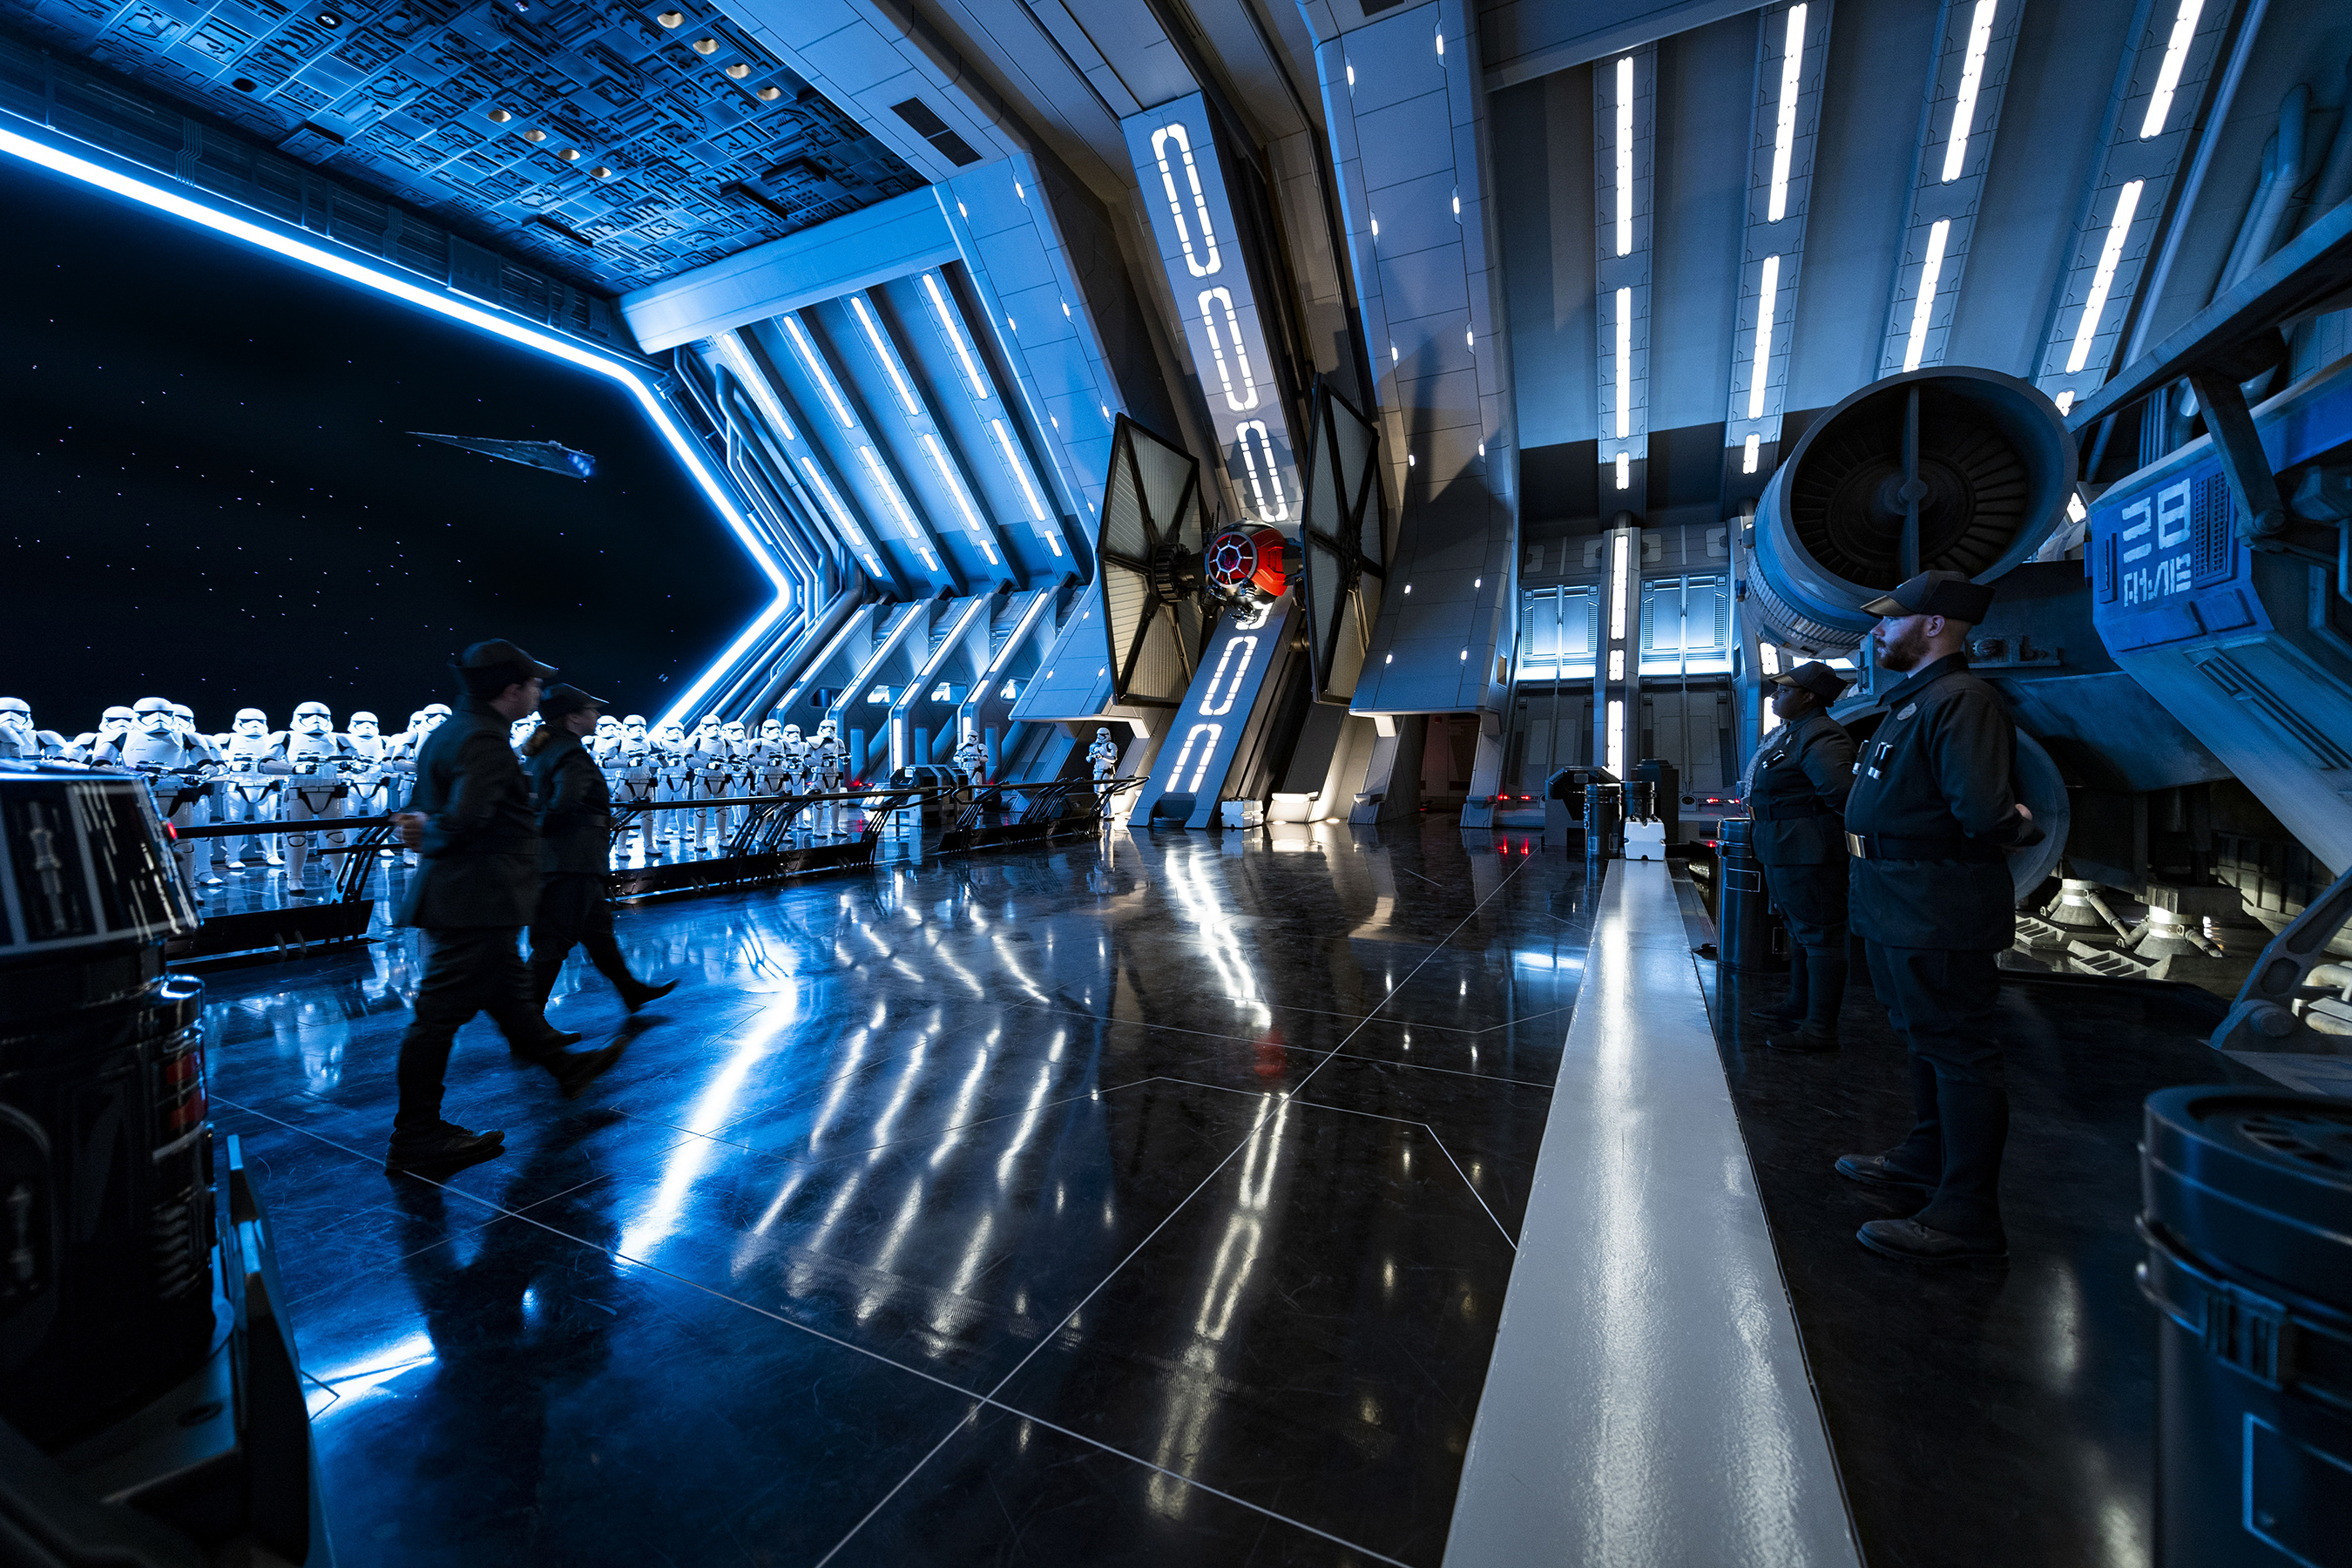 Inside the queue and ride of Star Wars Rise of the Resistance